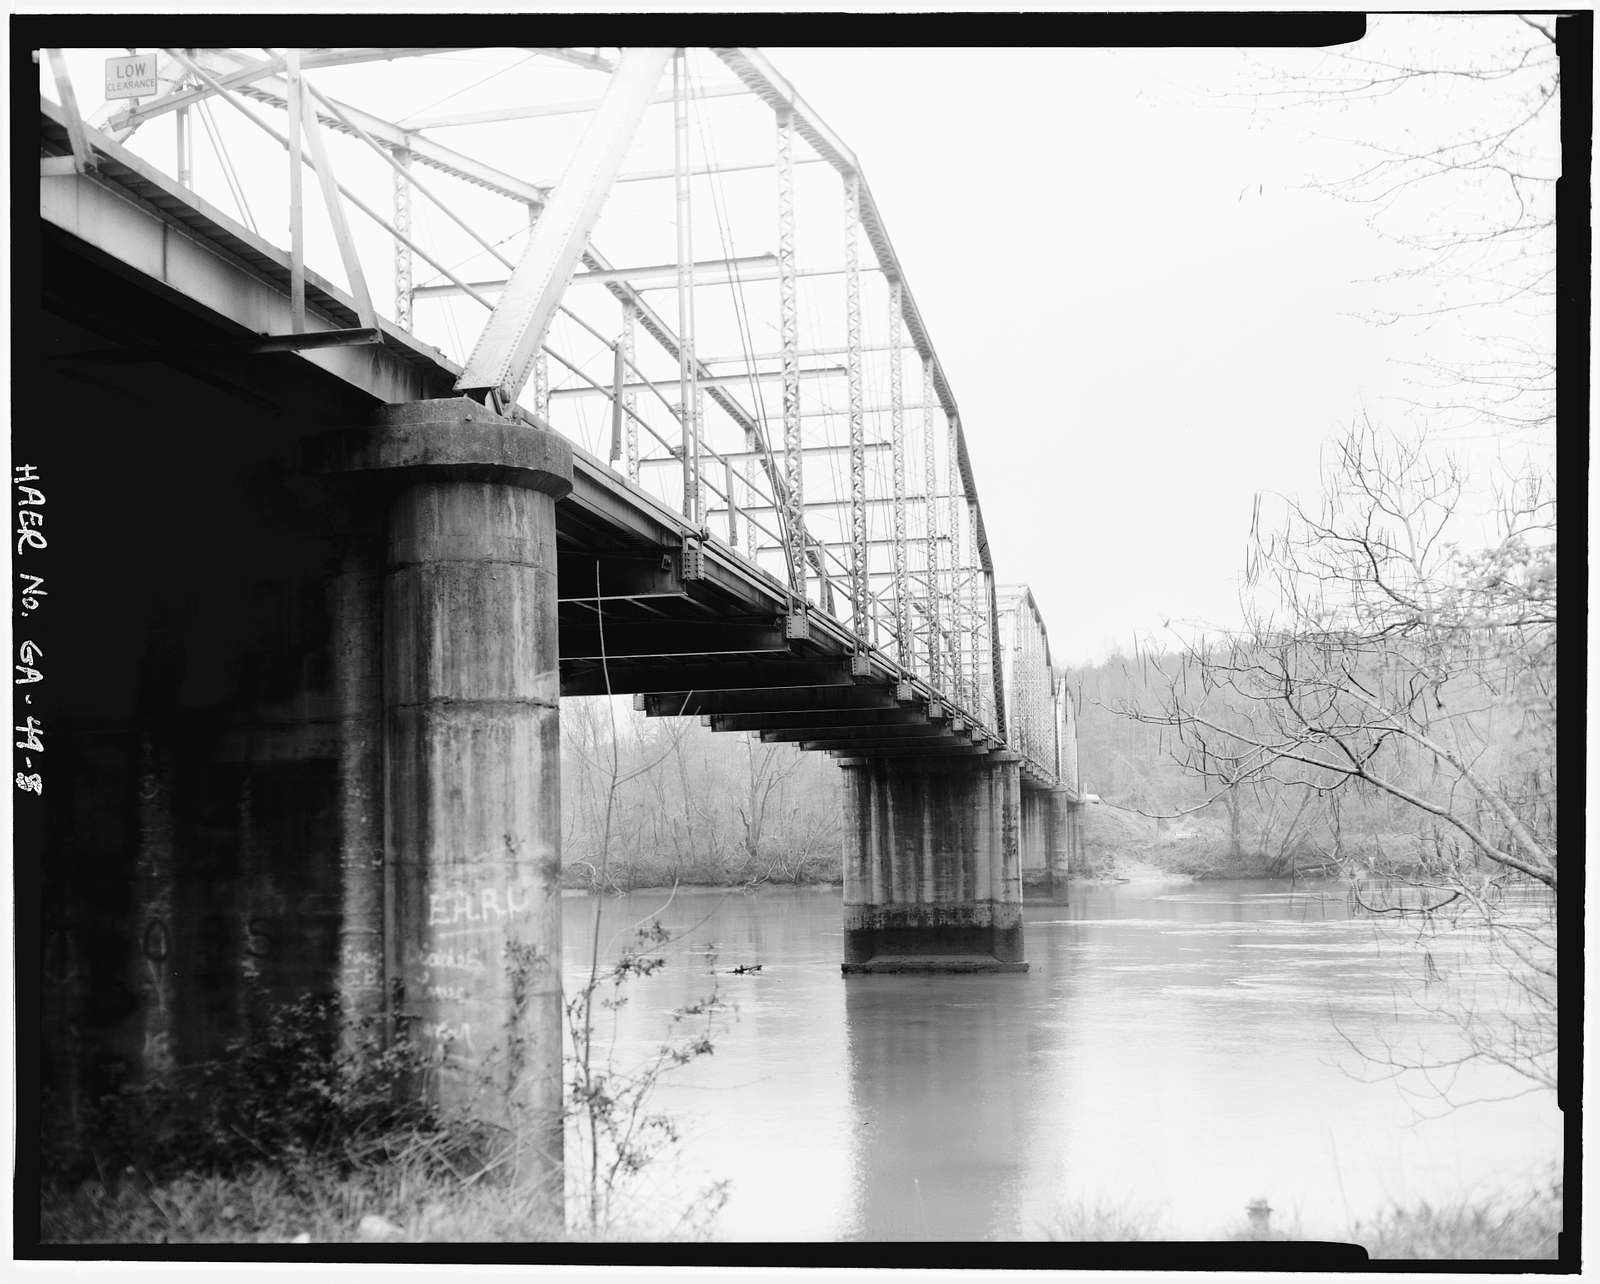 Hart County Bridge, State Route 181, spanning Savannah River, Hartwell, Hart County, GA